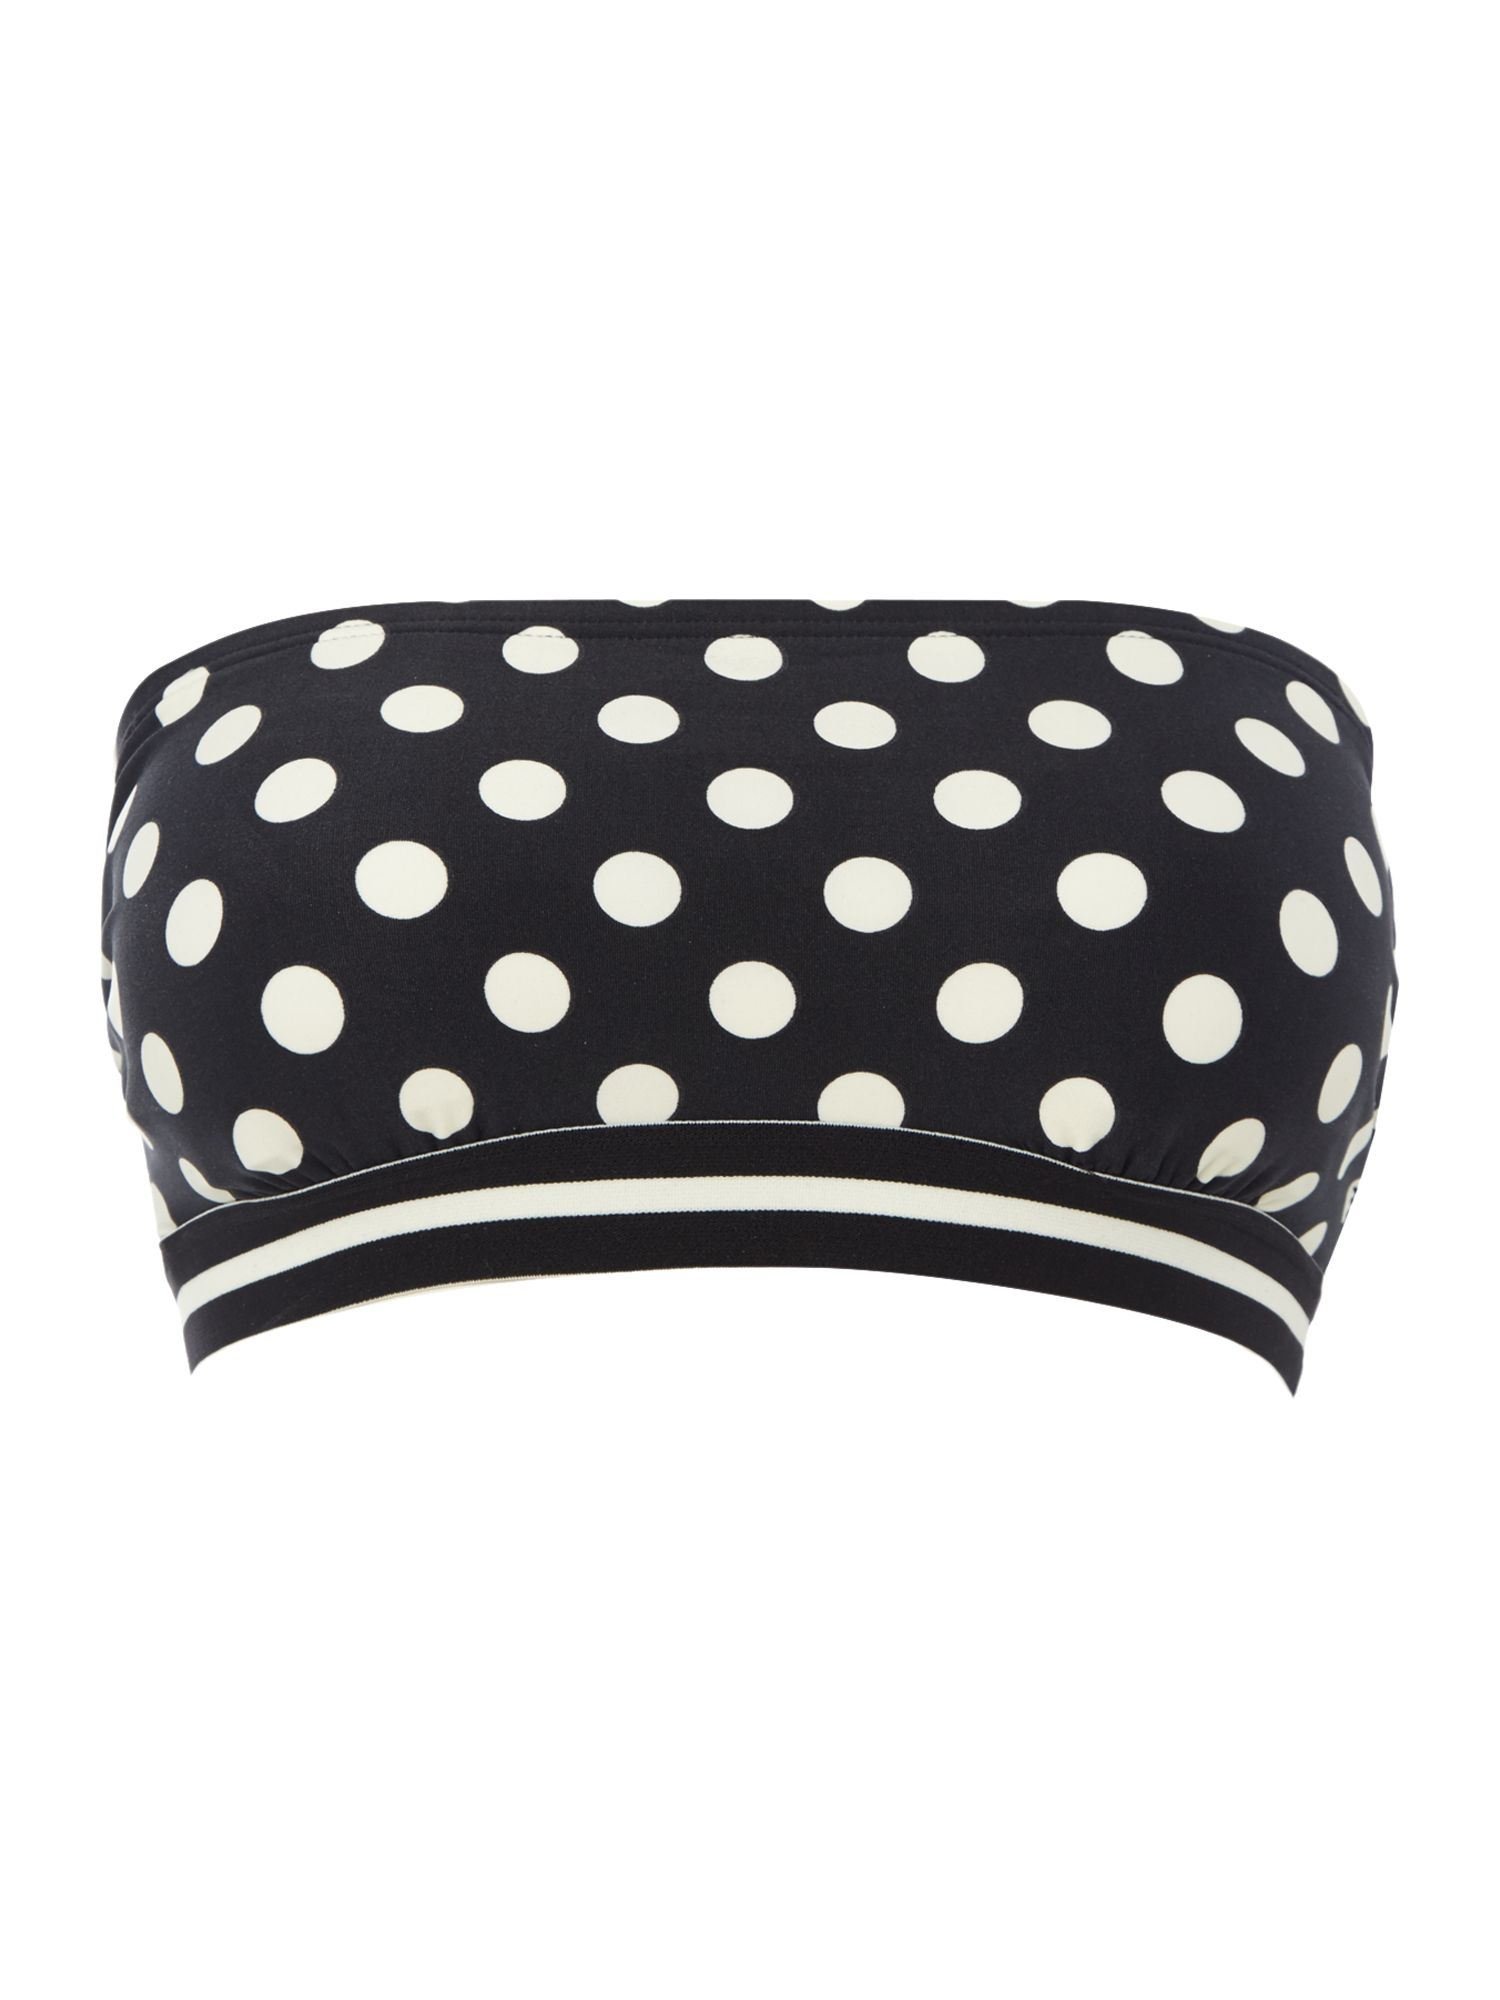 Kate Spade New York Polka dot bandeau bikini top, Black